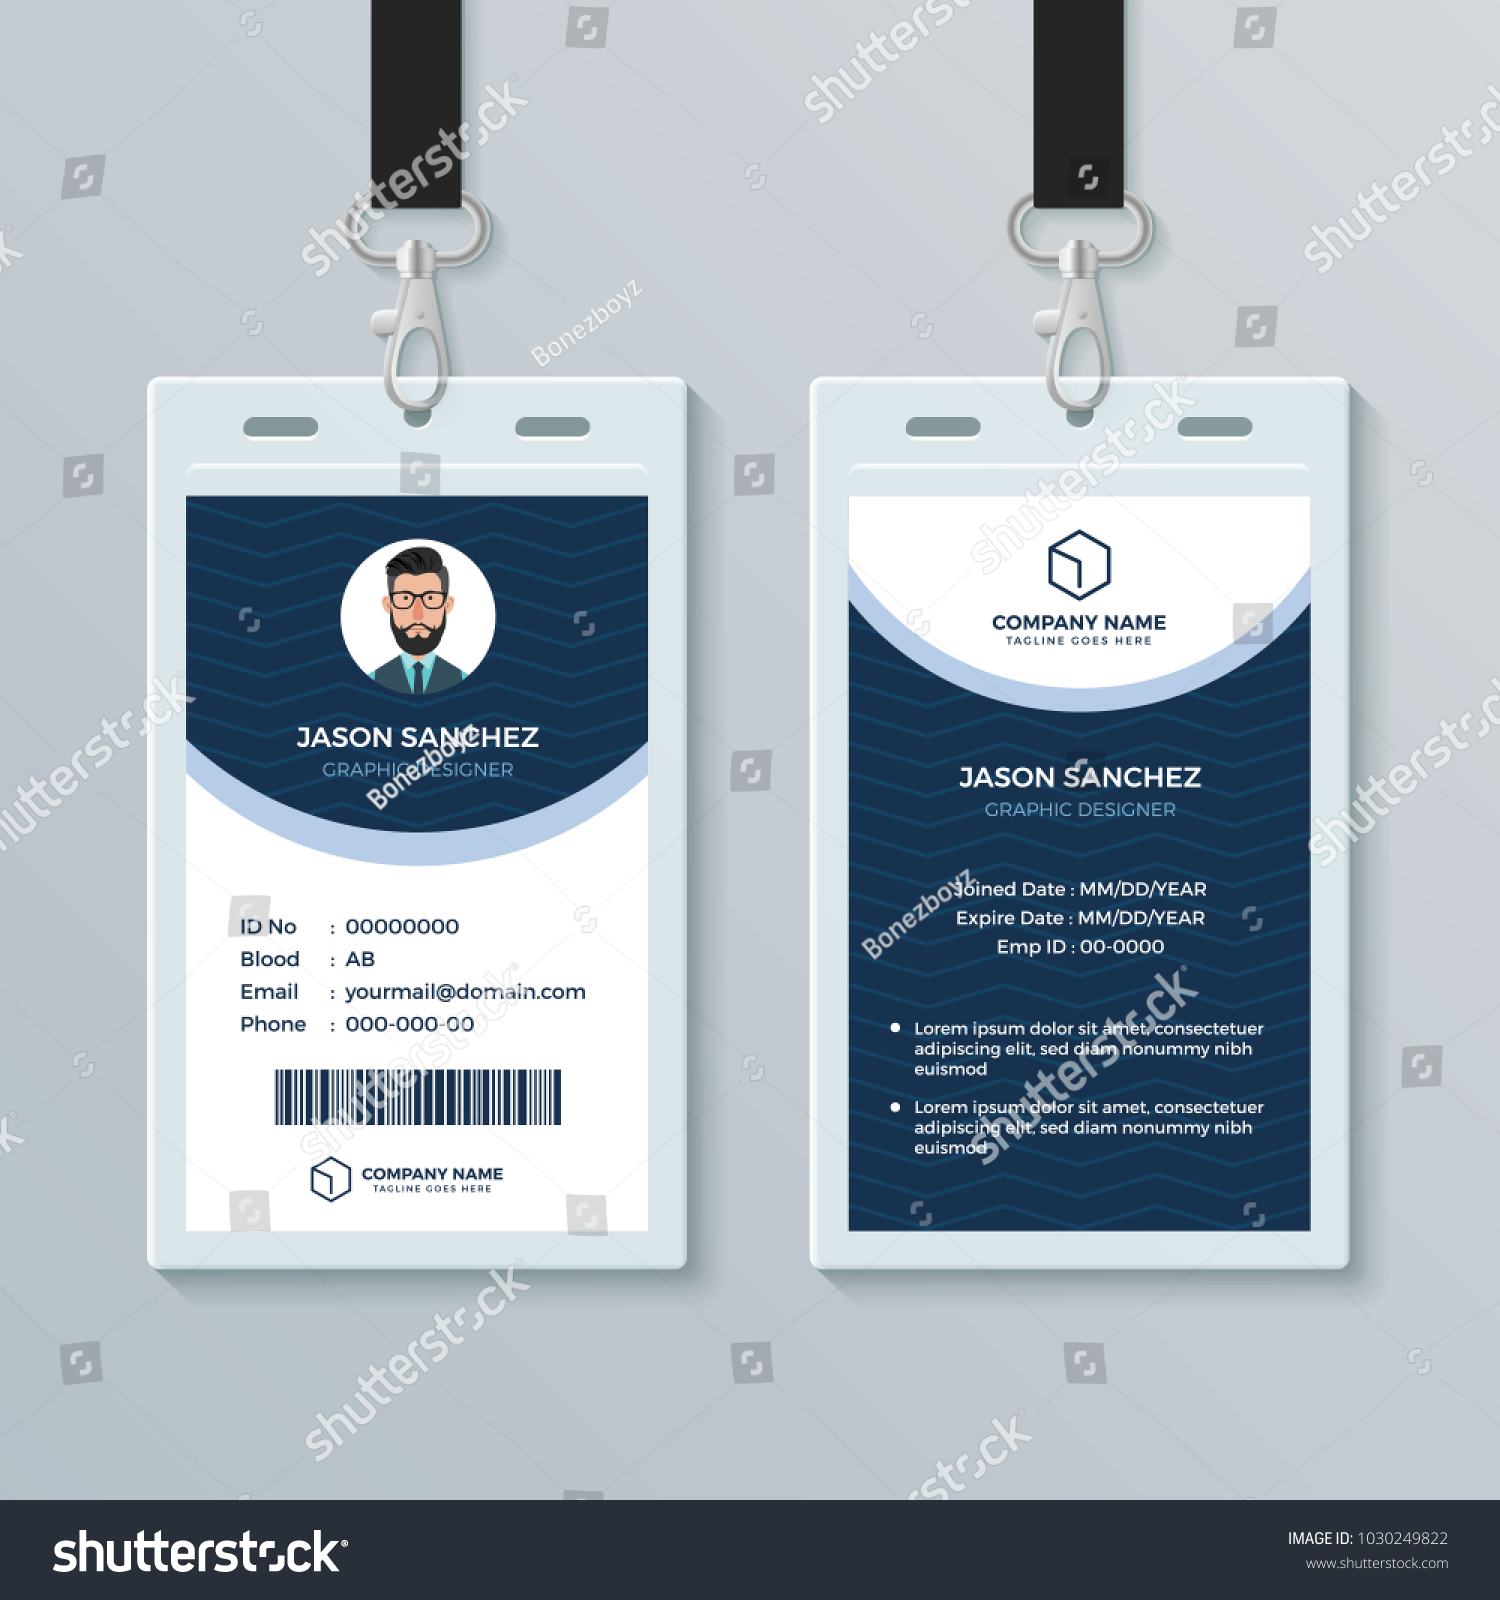 Clean Modern Employee ID Card Design Stock Vector 1030249822 ...